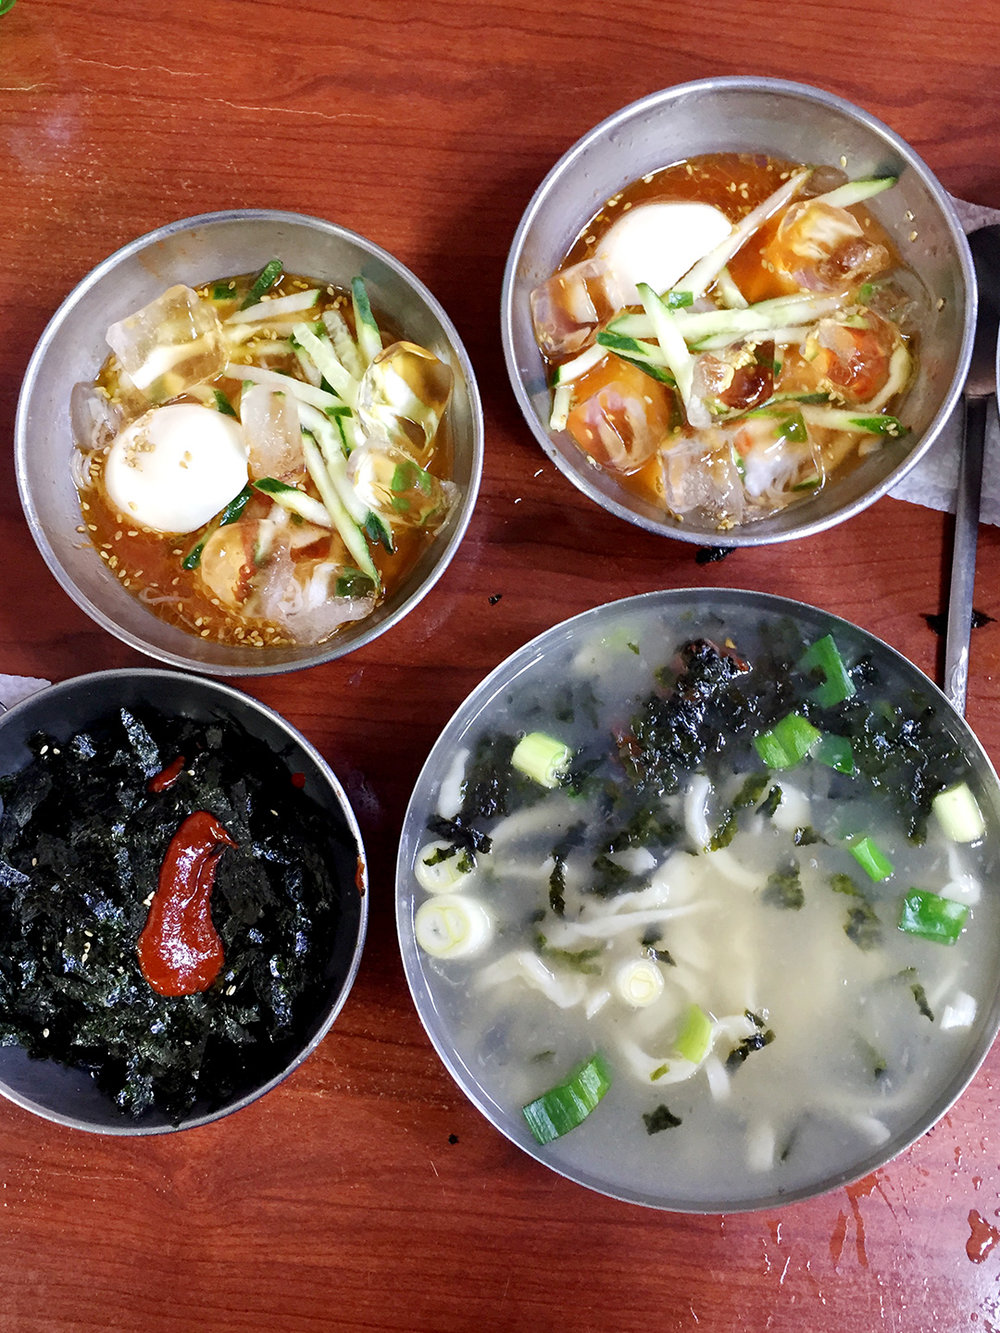 Han Soon Ja Kal Guksu (한순자 칼국수)  Info: The menu is insane here! 4,000 won for three things, including kalguksu (knife-cut noodles), boribab (barley rice), and naengmyun. What a steal! Address:  48-12 Namchang-dong, Jung-gu, Seoul, South Korea   남대문시장 · 서울시 중구 남창동 48-12   Website